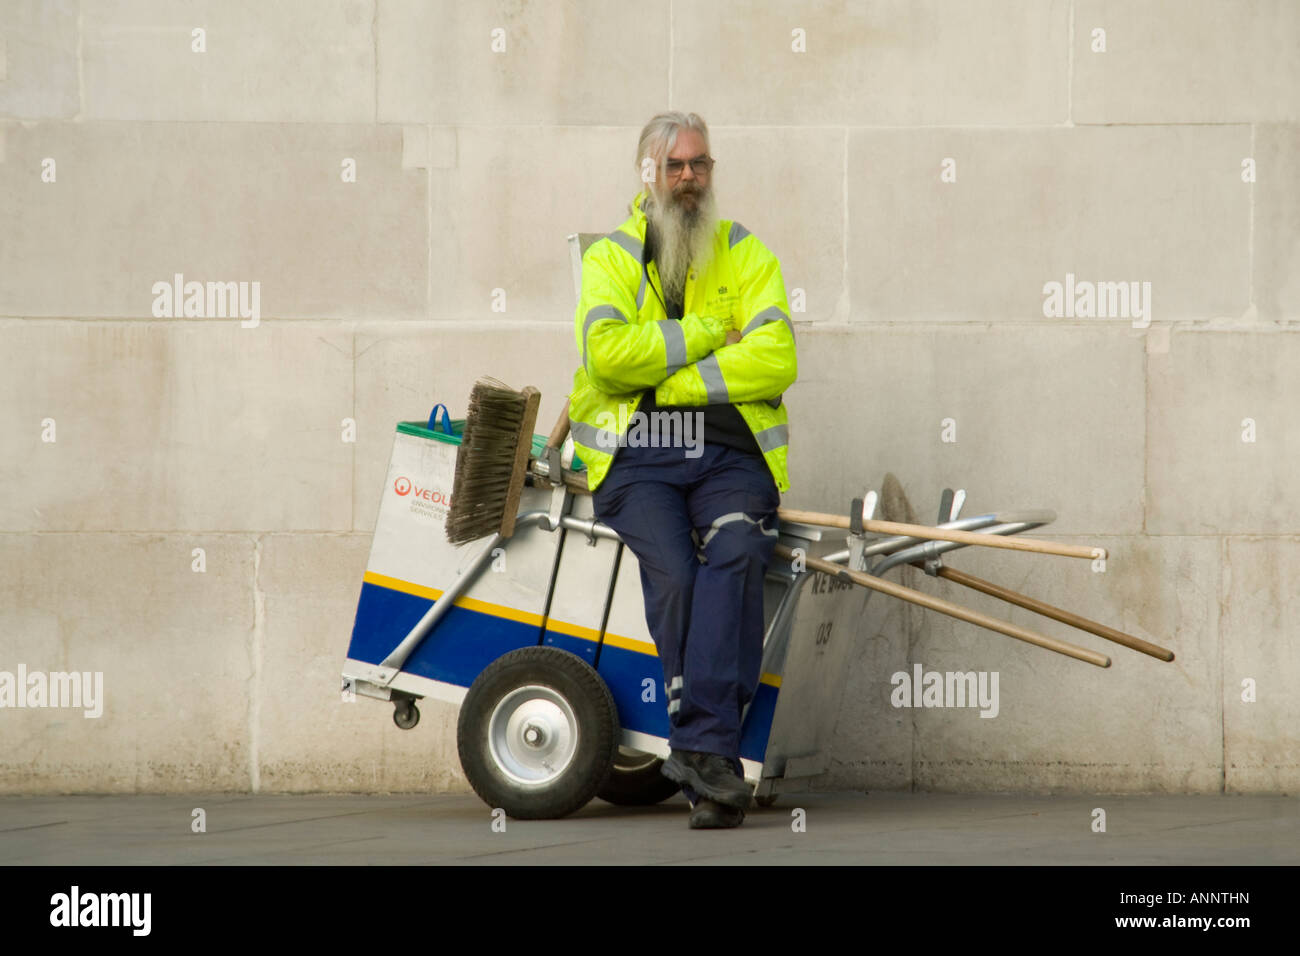 Horizontal close up portrait of a council street cleaner sitting on his cart having a break. Stock Photo